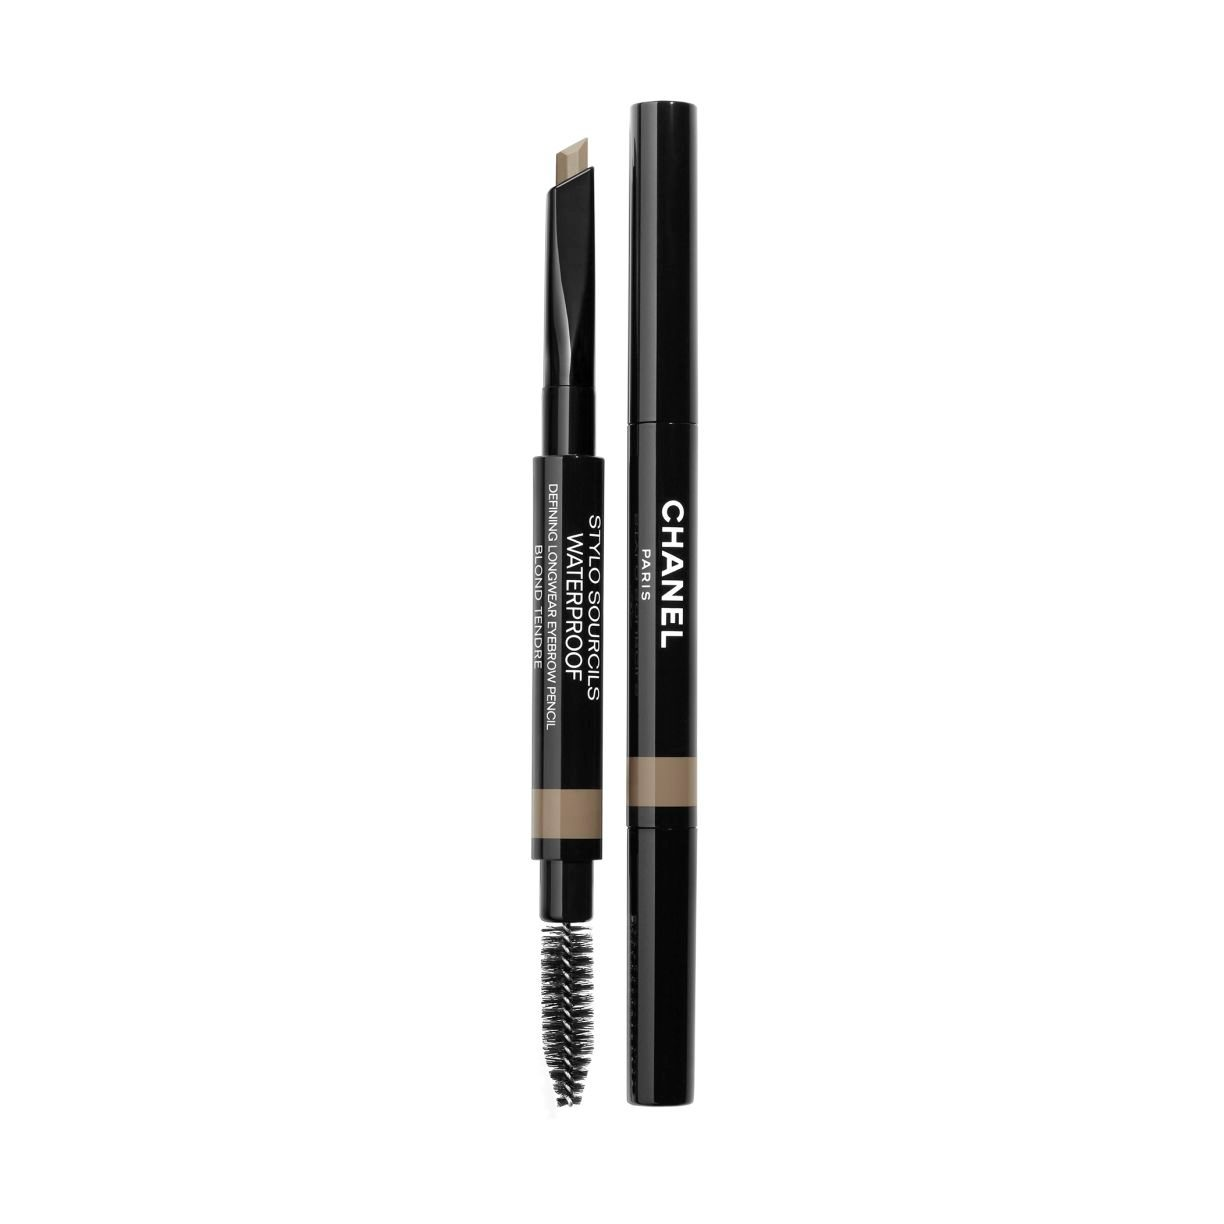 STYLO SOURCILS WATERPROOF DEFINING LONGWEAR EYEBROW PENCIL